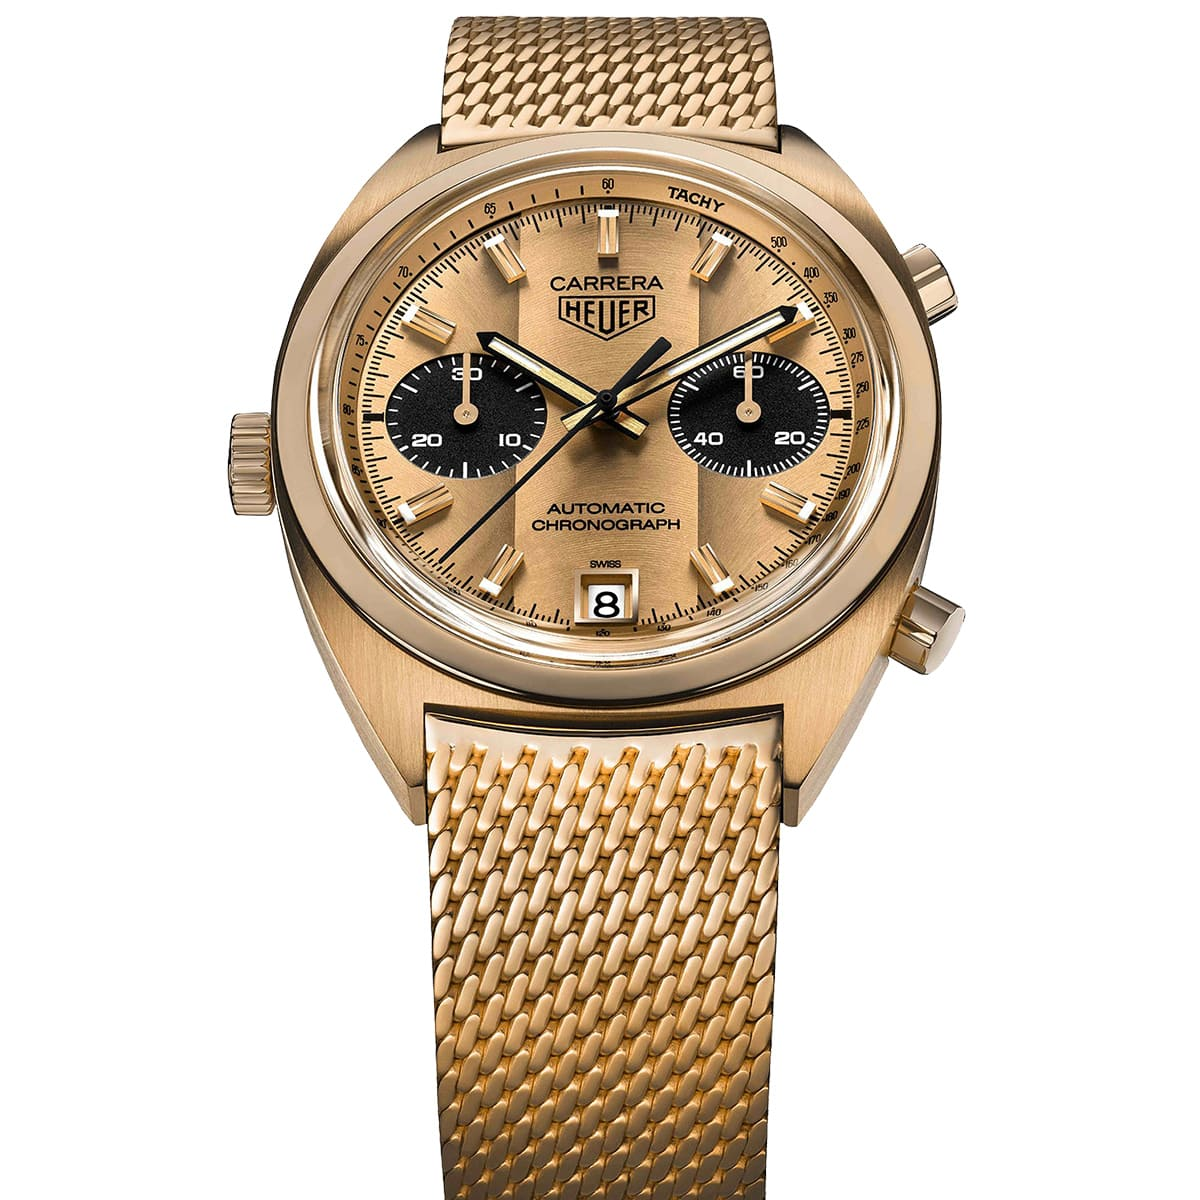 Formula One Driver Ronnie Peterson's Gold Heuer Carrera Ref. 1158